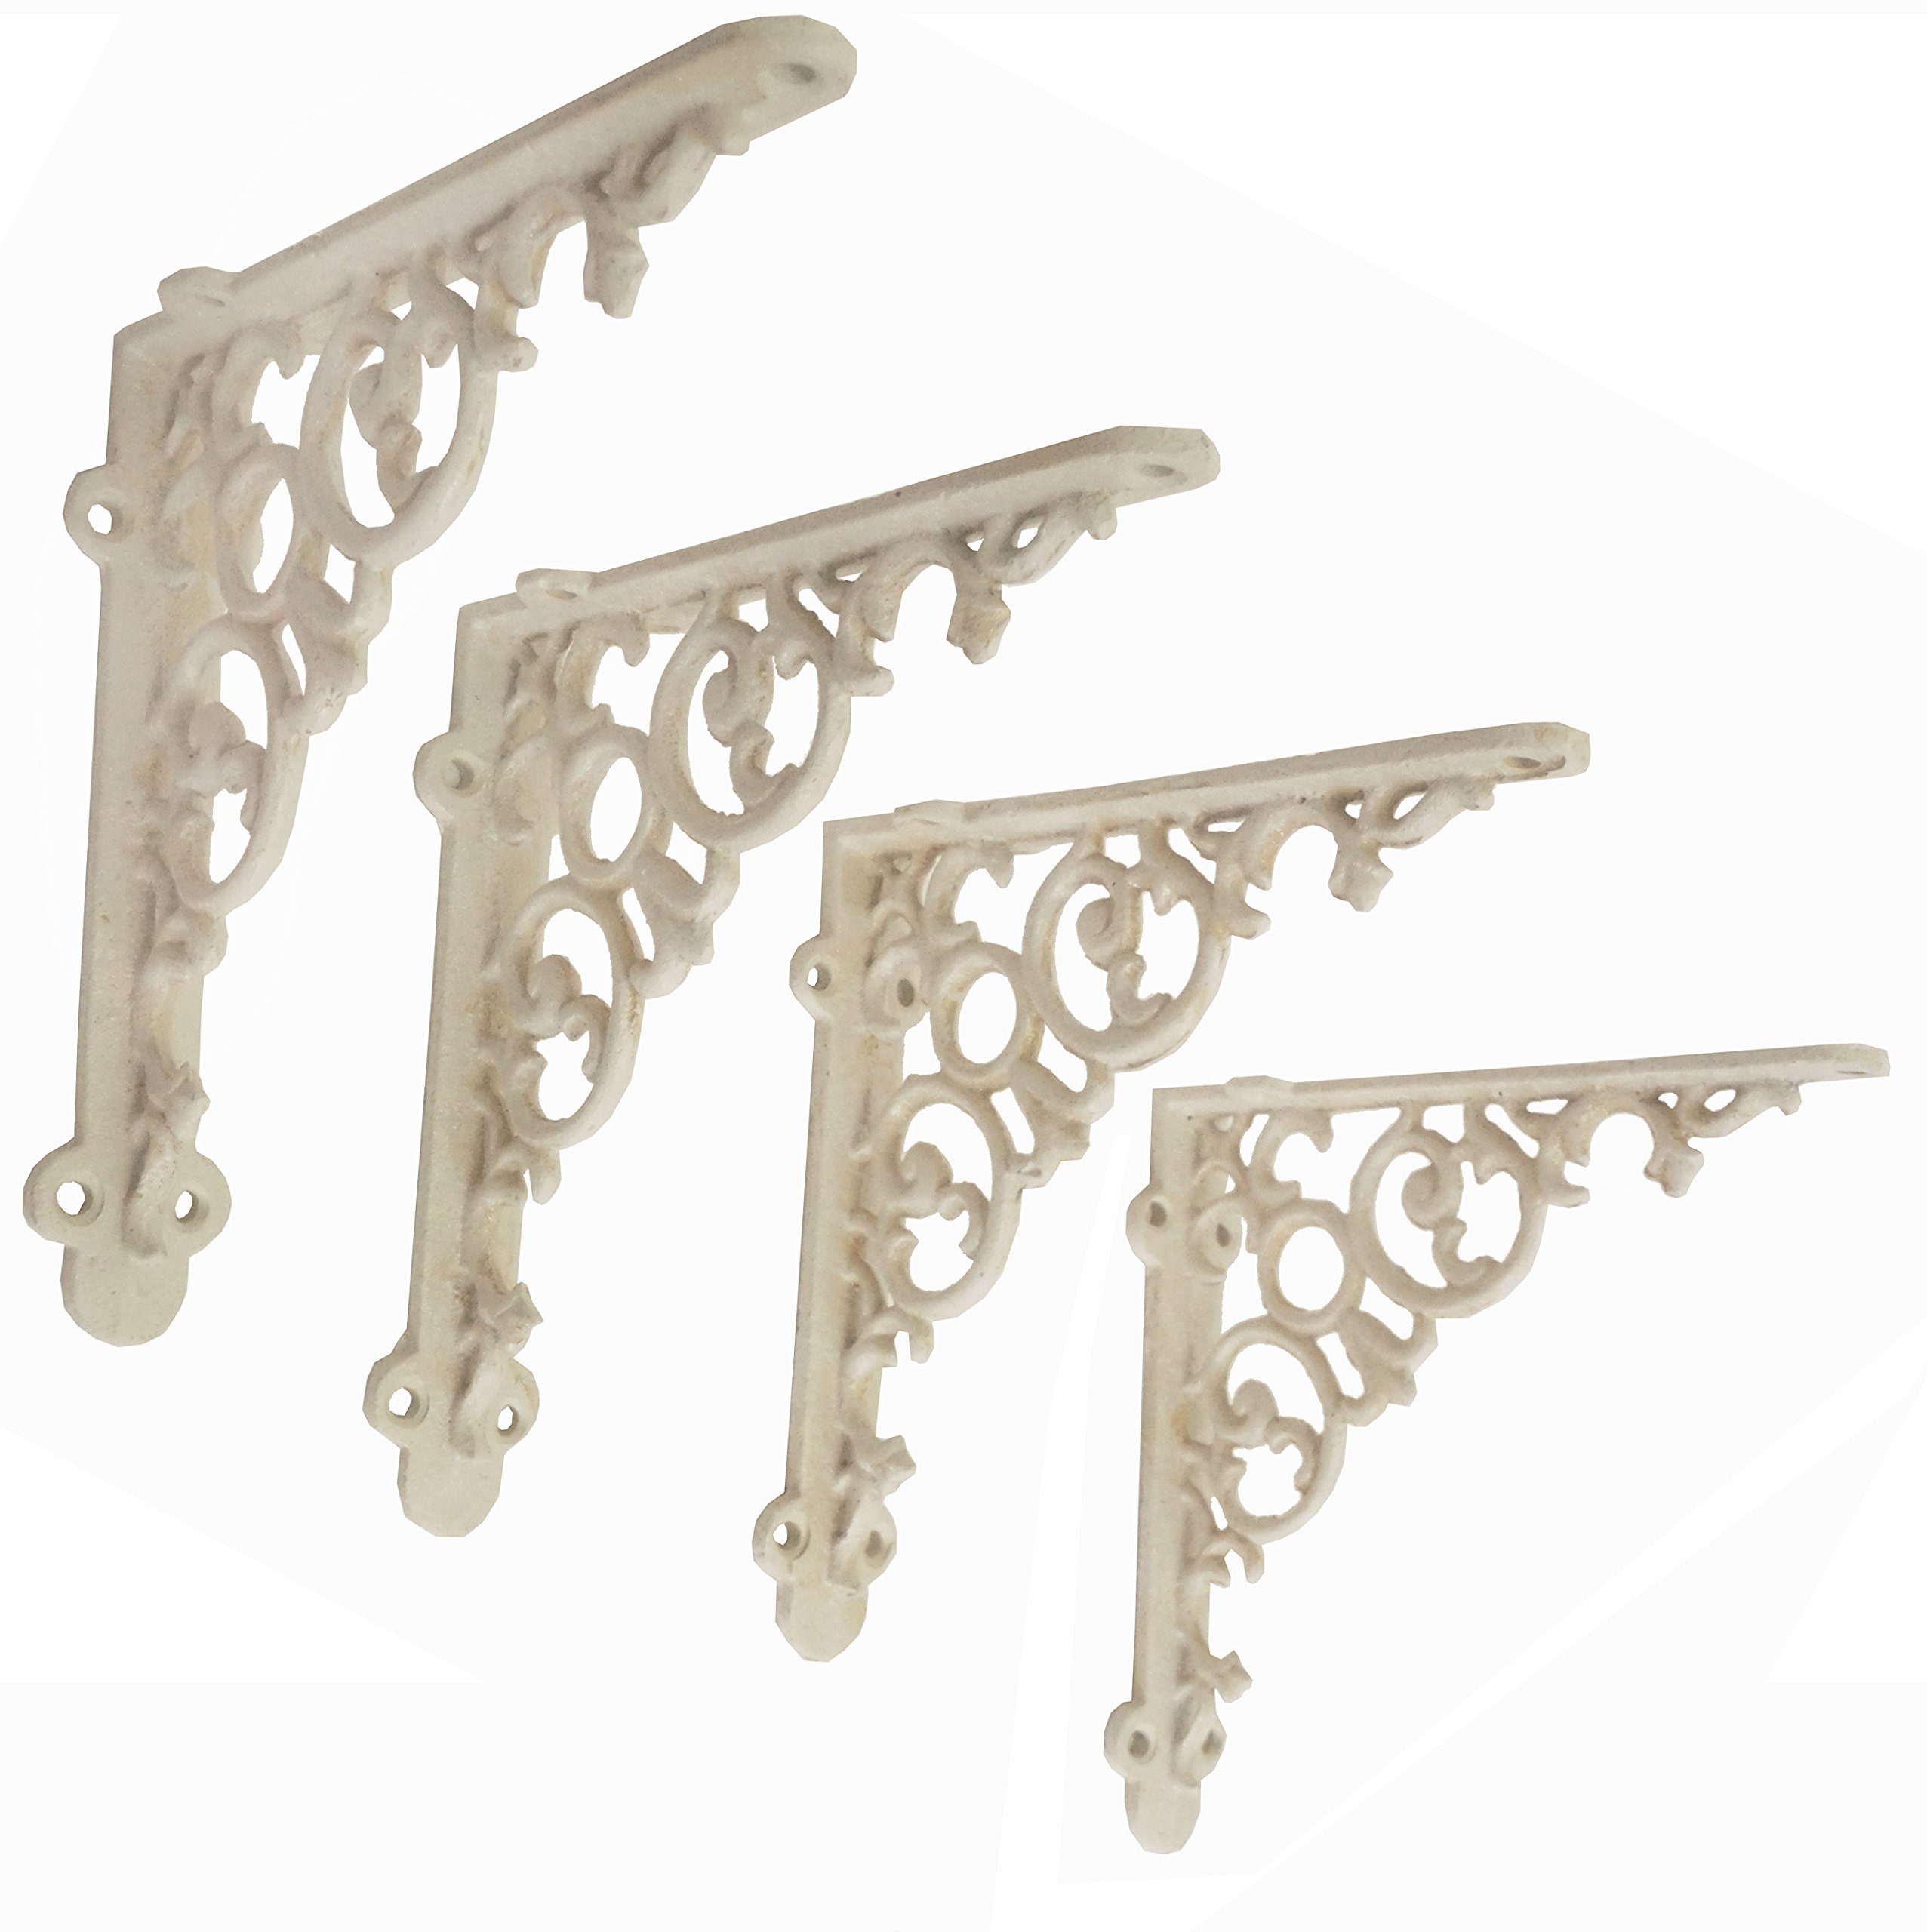 NACH js-90-416AW Cast Iron Victorian Scroll Shelf Brackets, Pack of 4, White, Small 6x1.2x6 Inches